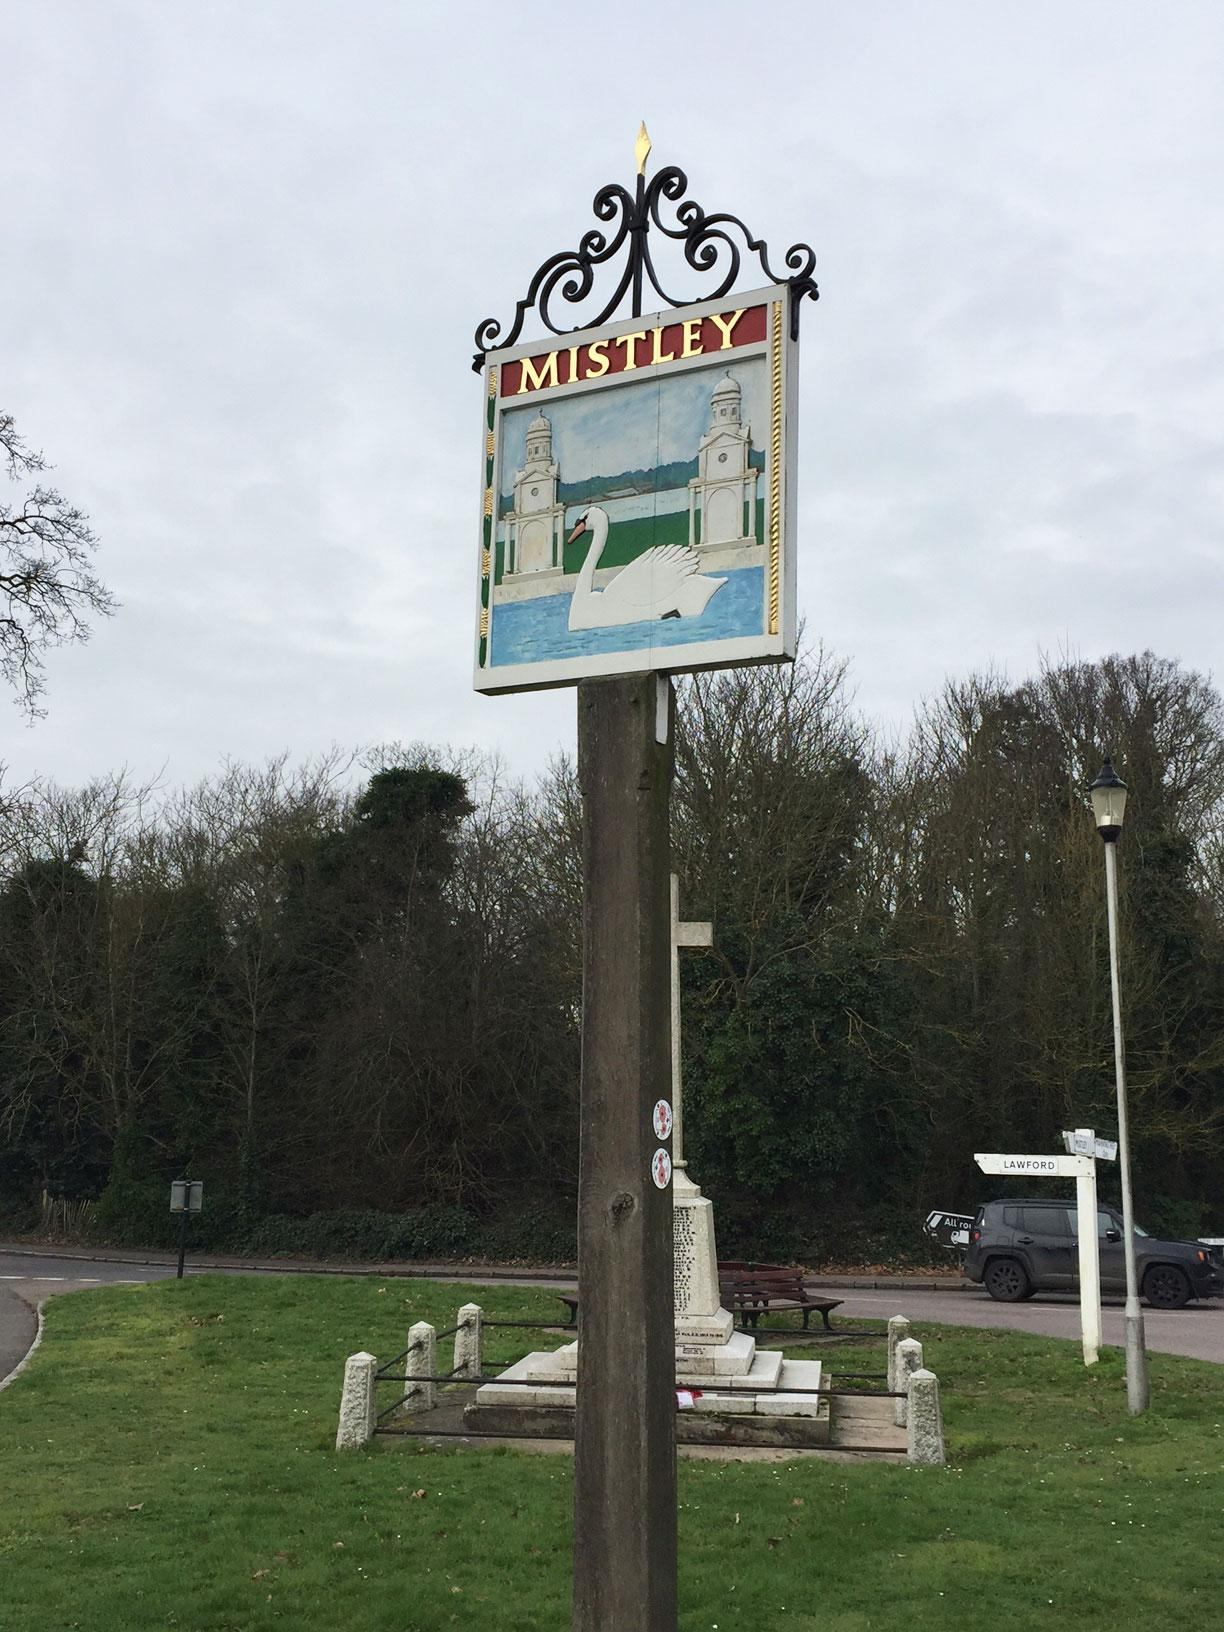 Walking the final section of the Essex Way, an 82 mile long trail from Epping to Harwich. Getting outdoors and supporting local females for International Women's Day.